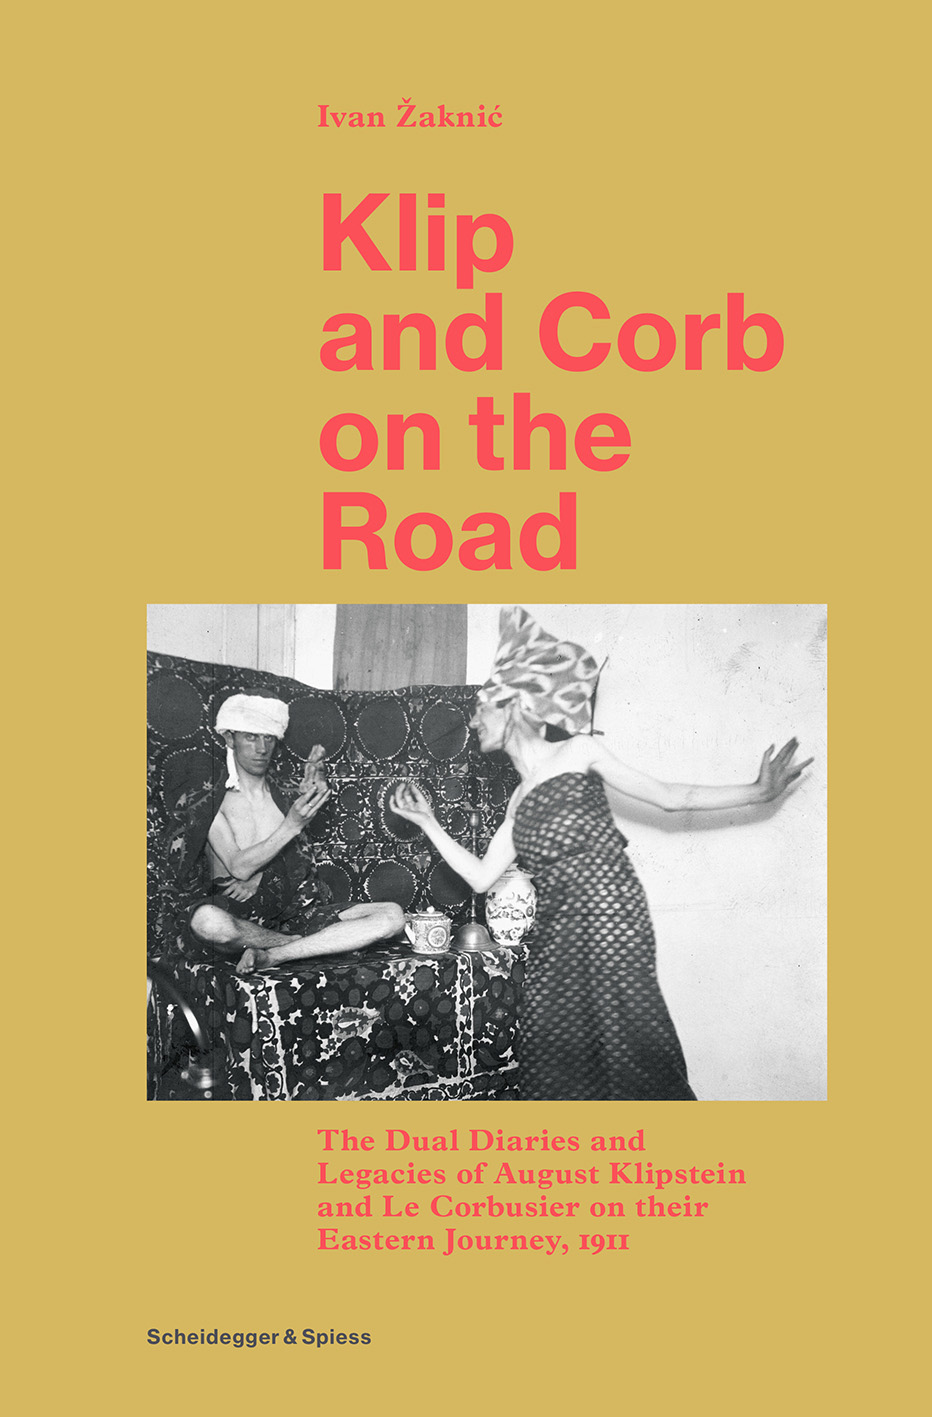 Klip and Corb on the Road: The Dual Diaries and Legacies of August Klipstein and Le Corbusier on their Eastern Journey, 1911